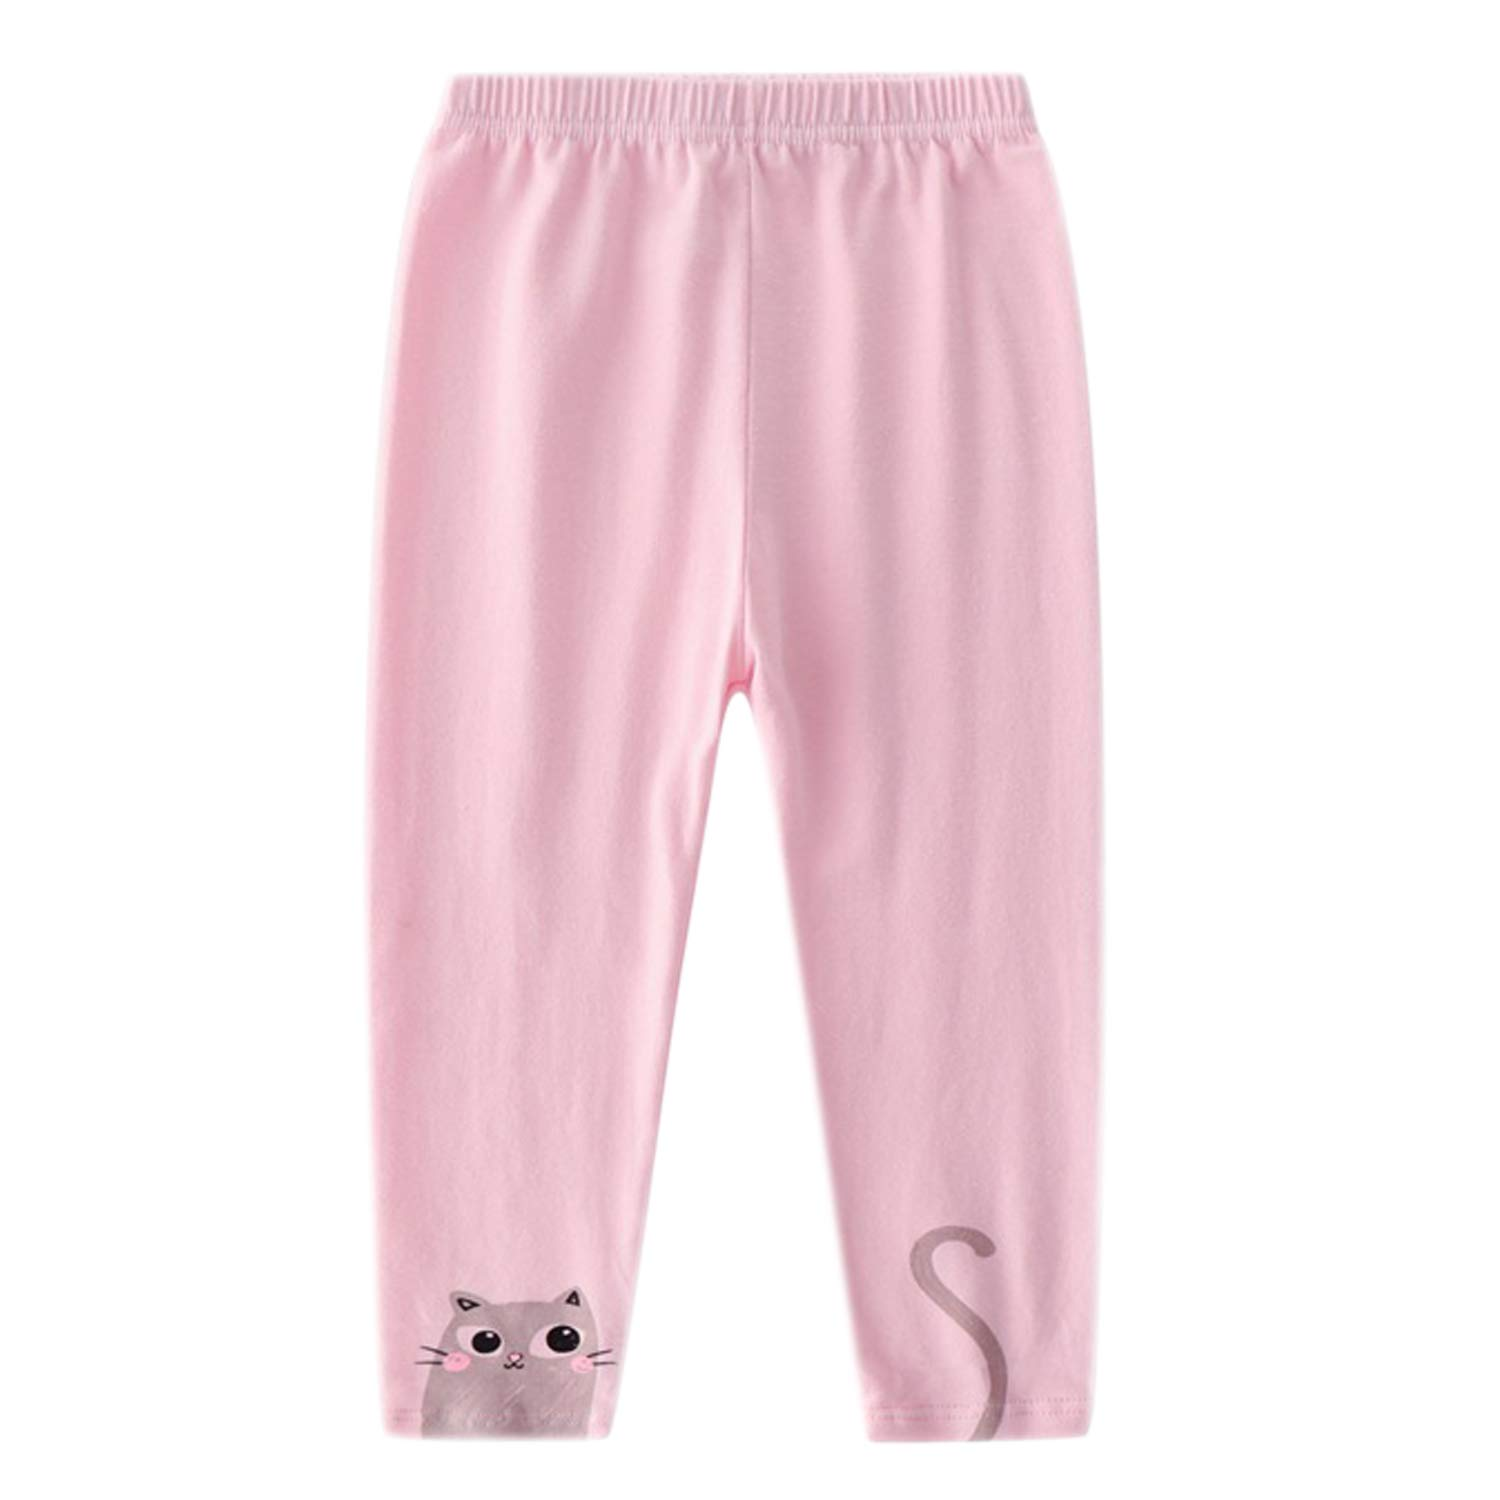 Evelin LEE 4 Packs Baby Girls Cotton Stretchy Tapered Pants Cute Skinny Pajamas Leggings by Evelin LEE (Image #5)